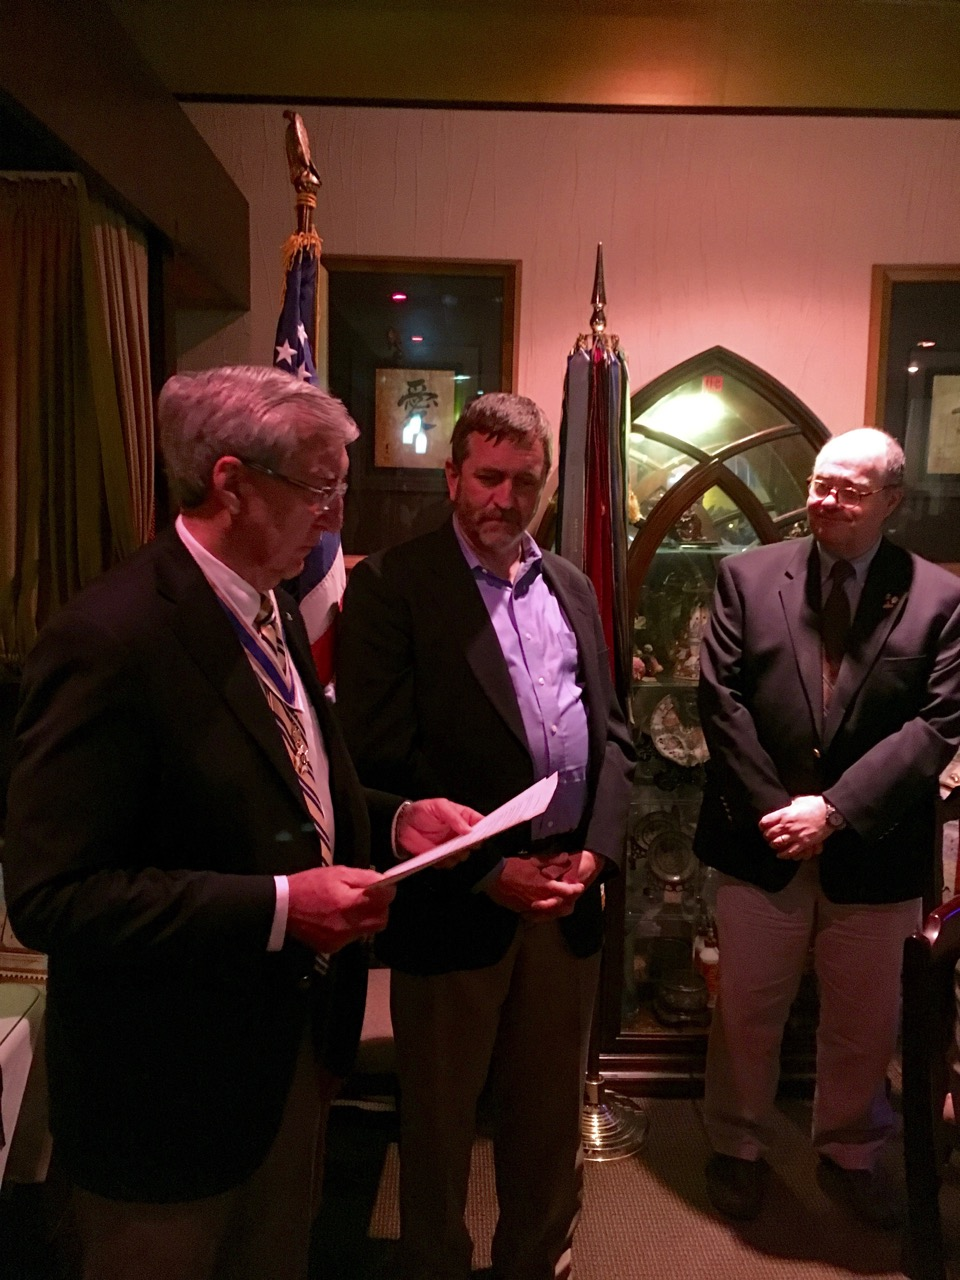 Steve Kelly is inducted as a new member to the Chapter by President Ken Hawkins as Registrar Bob Avery looks on